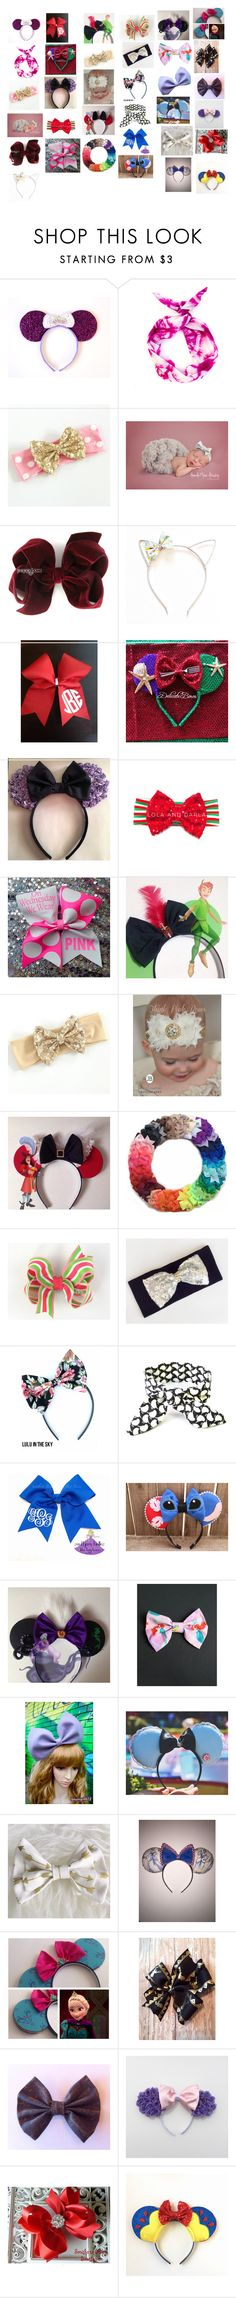 """""""You're never too old to wear a bow"""" by silentpoetgeek ❤ liked on Polyvore featuring beauty and Disney"""